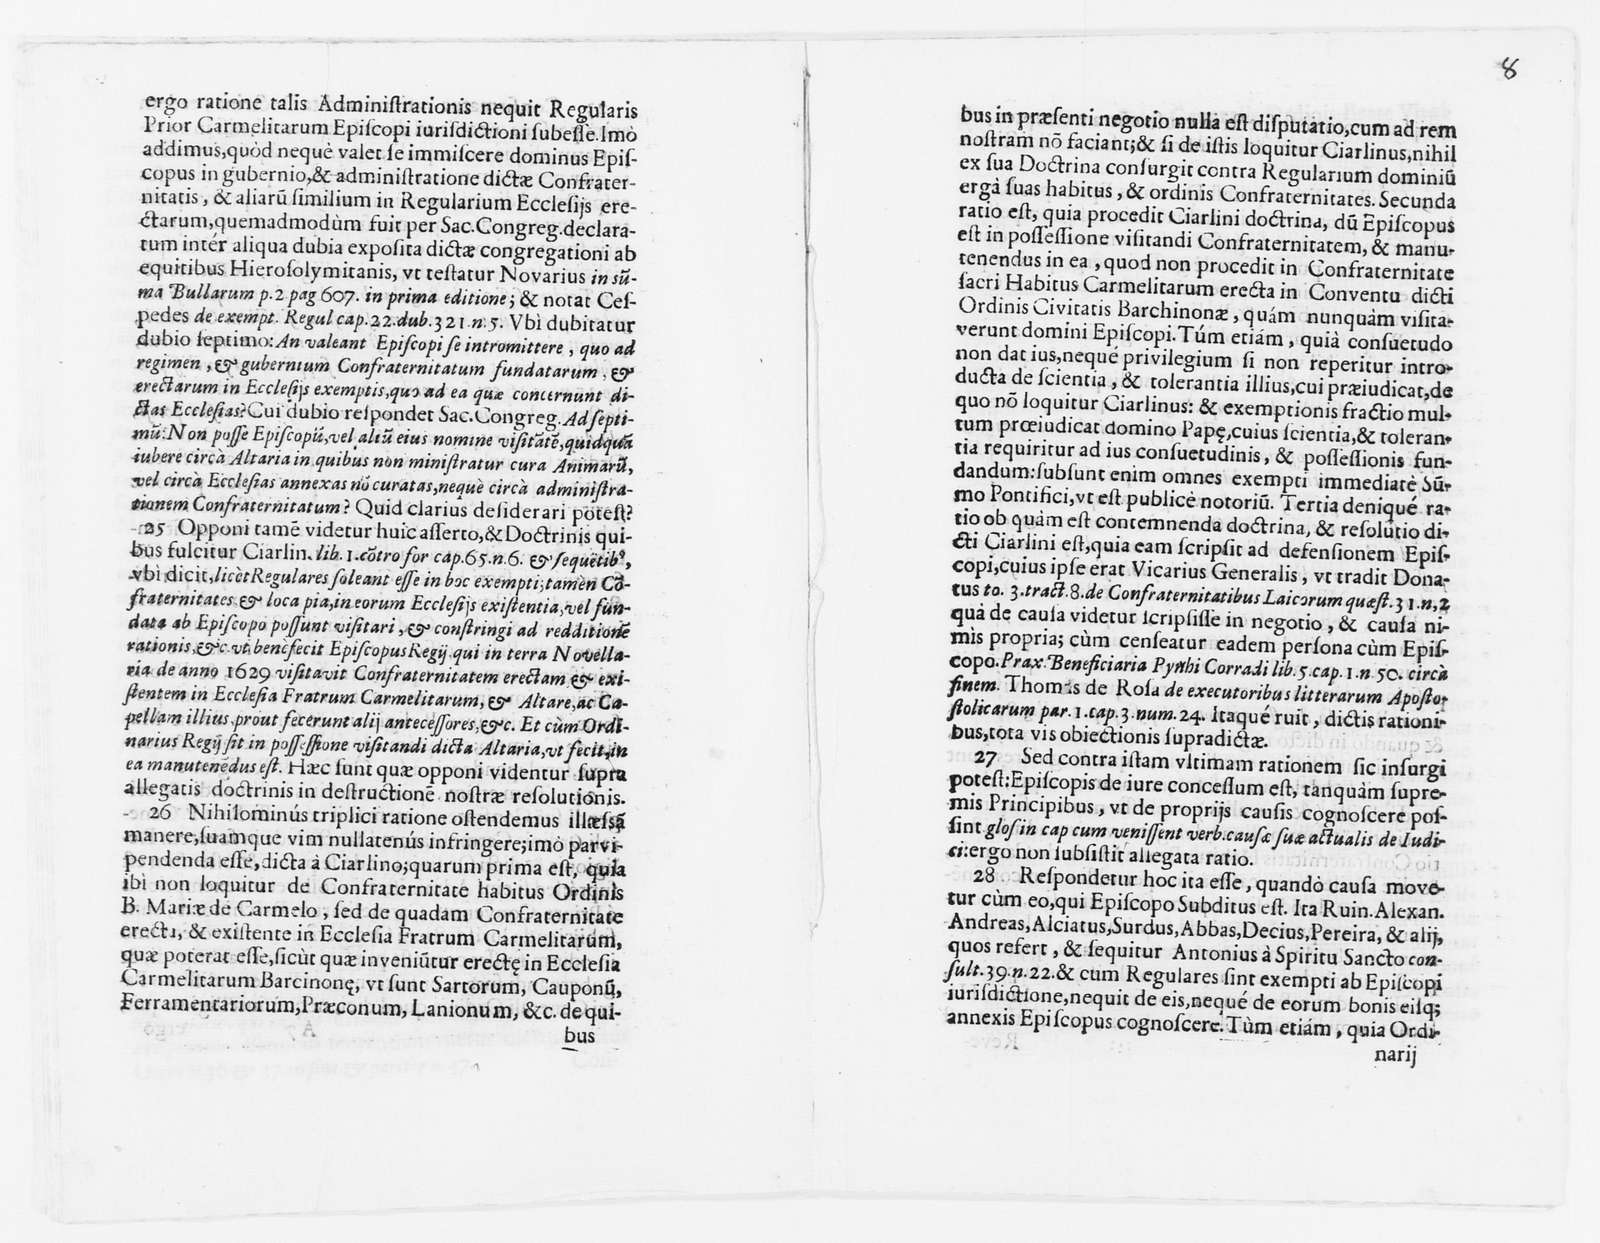 Brief on behalf the Brotherhood of Nuestra Señora del Carmen versus the Reverend Prior of the Monastery of El Carmen of the city of Barcelona, concerning certain offenses committed by the Sexton of said monastery against said brotherhood. Ca. 1687